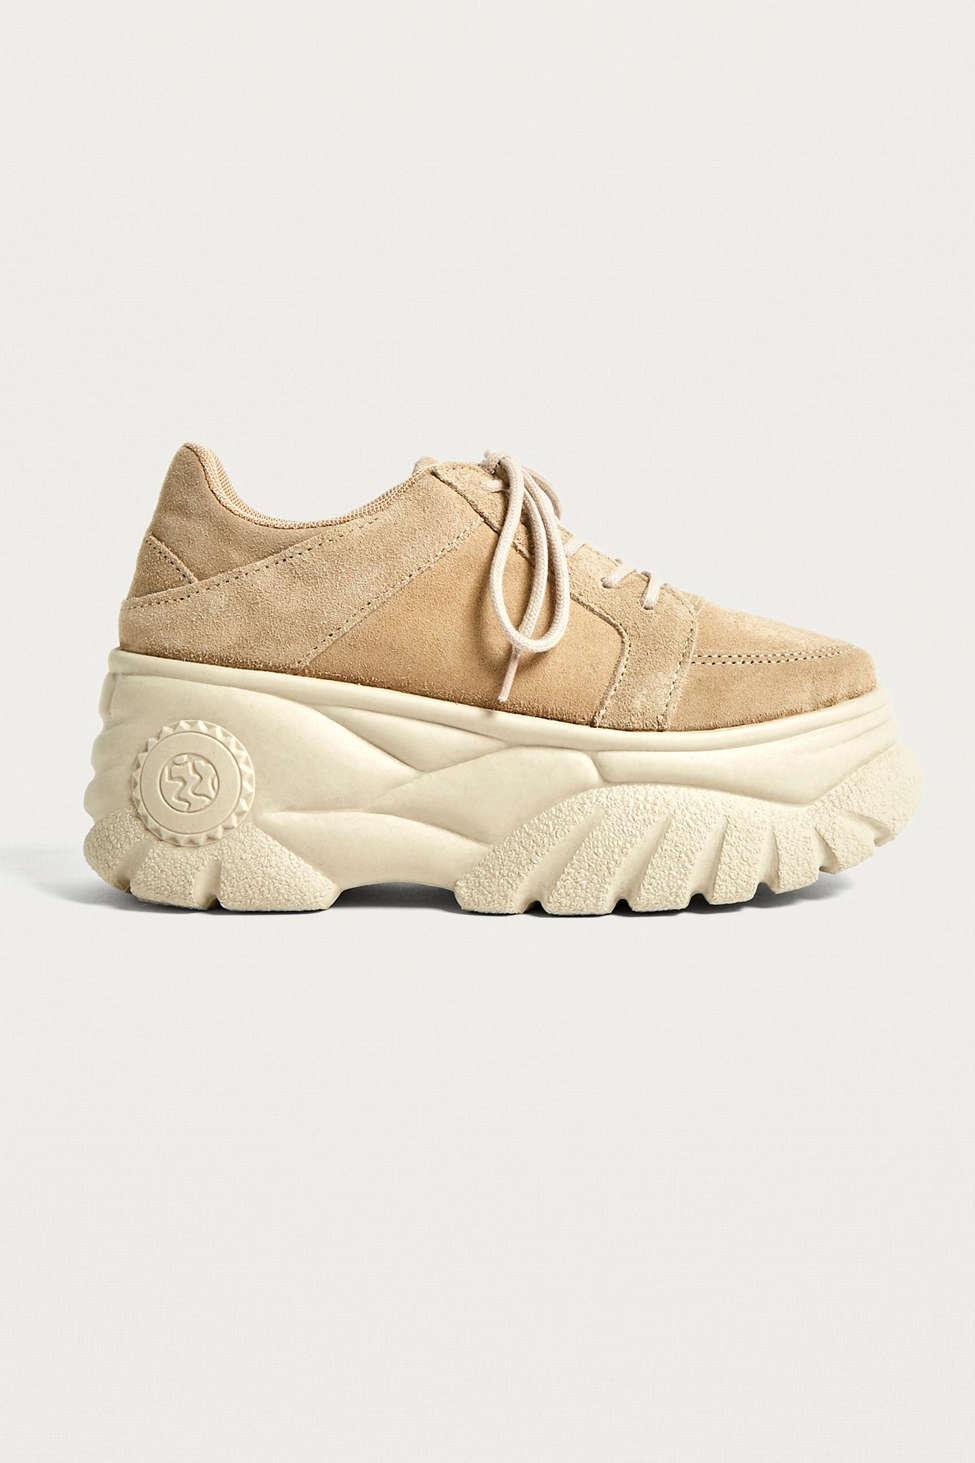 Urban Outfitters Uo Tyson Tan Suede